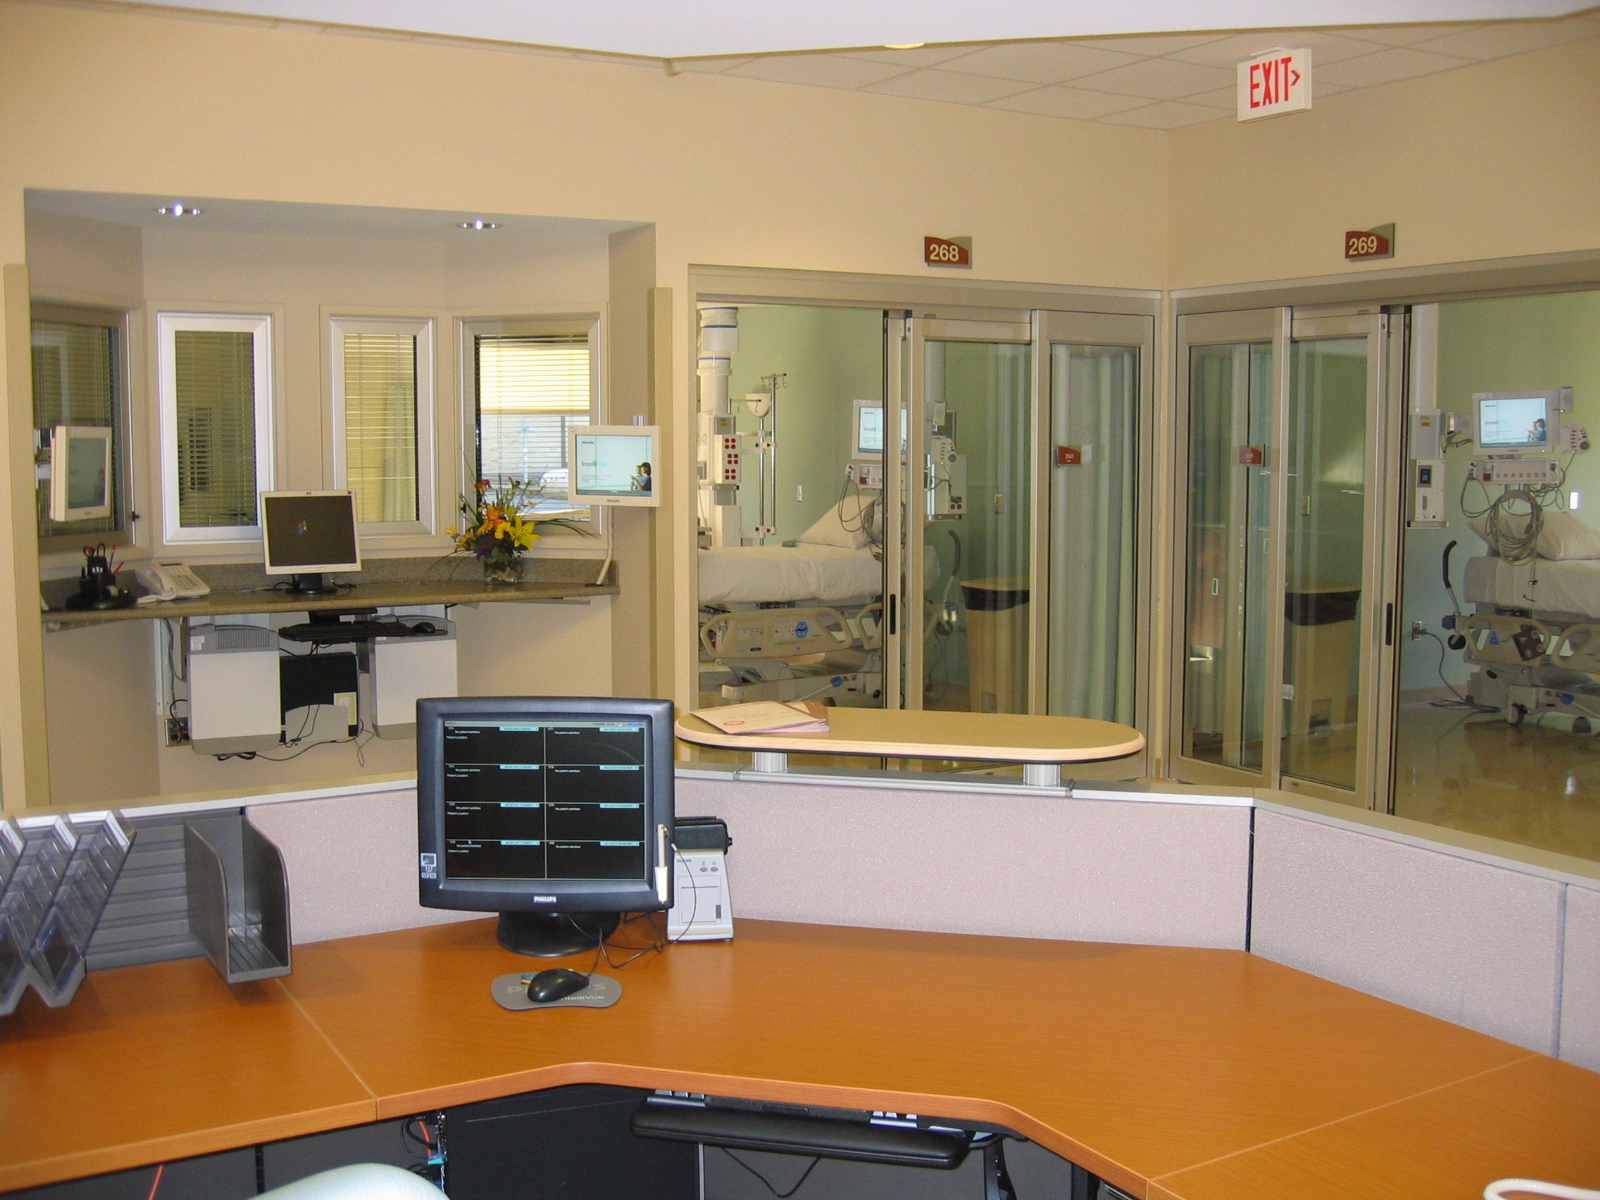 ICU Nurse Station.jpg